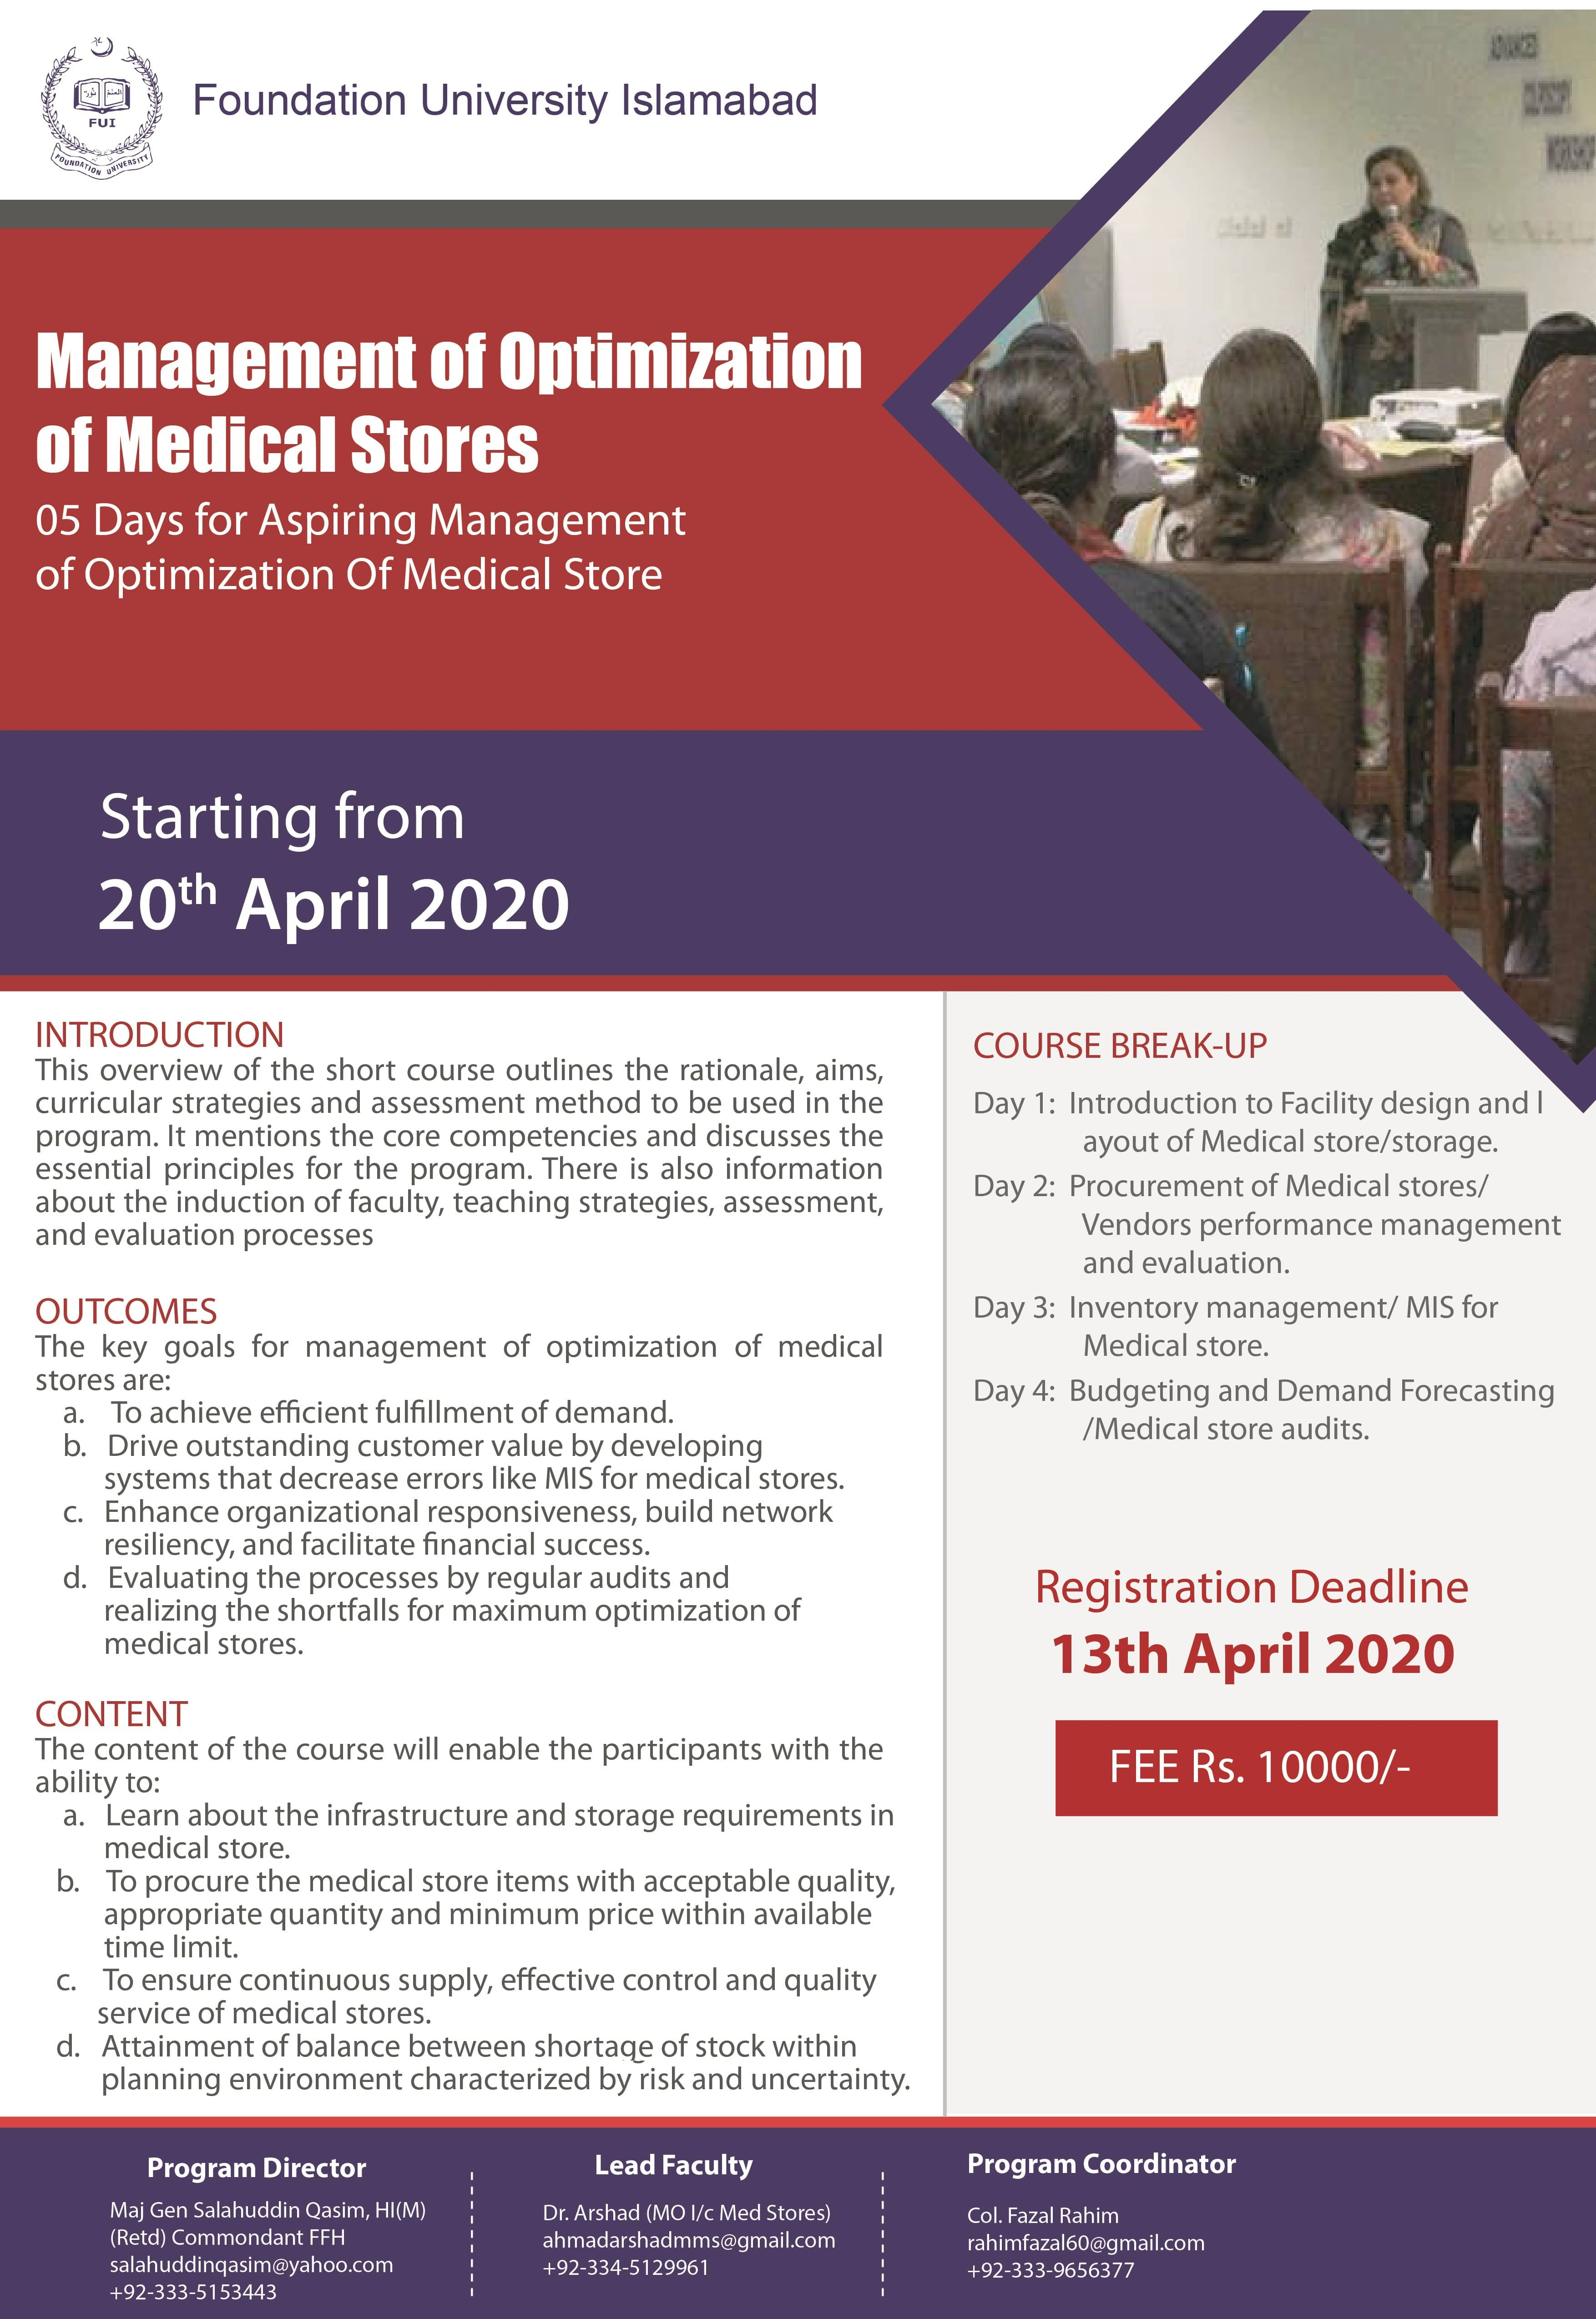 Management of Optimization of Medical Stores min